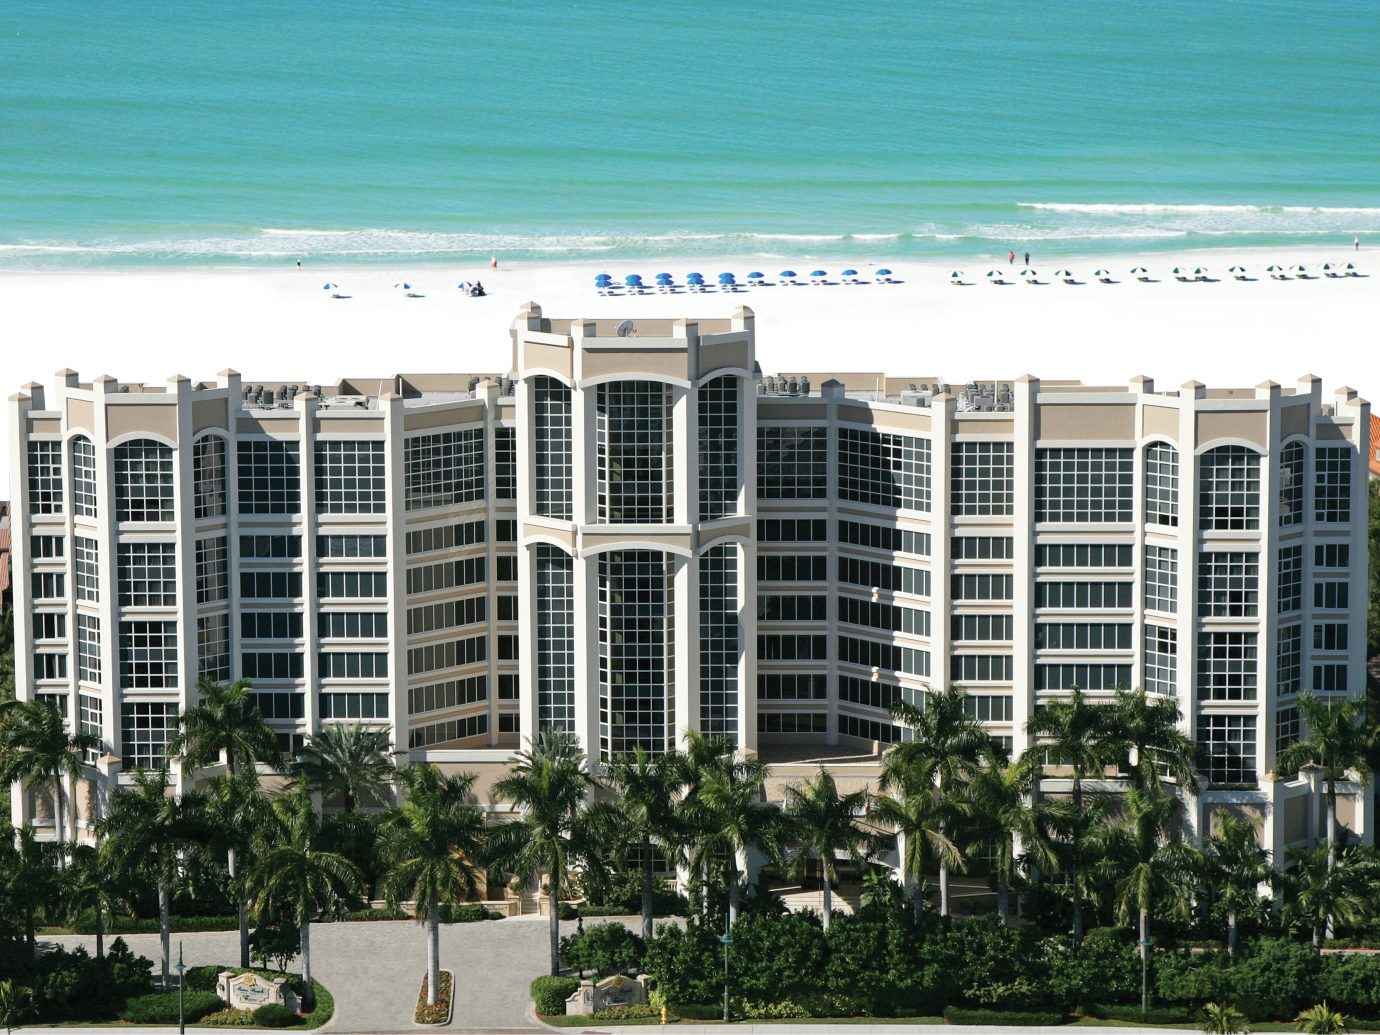 Aerial view of Marco Beach Ocean Resort, Marco Island, FL